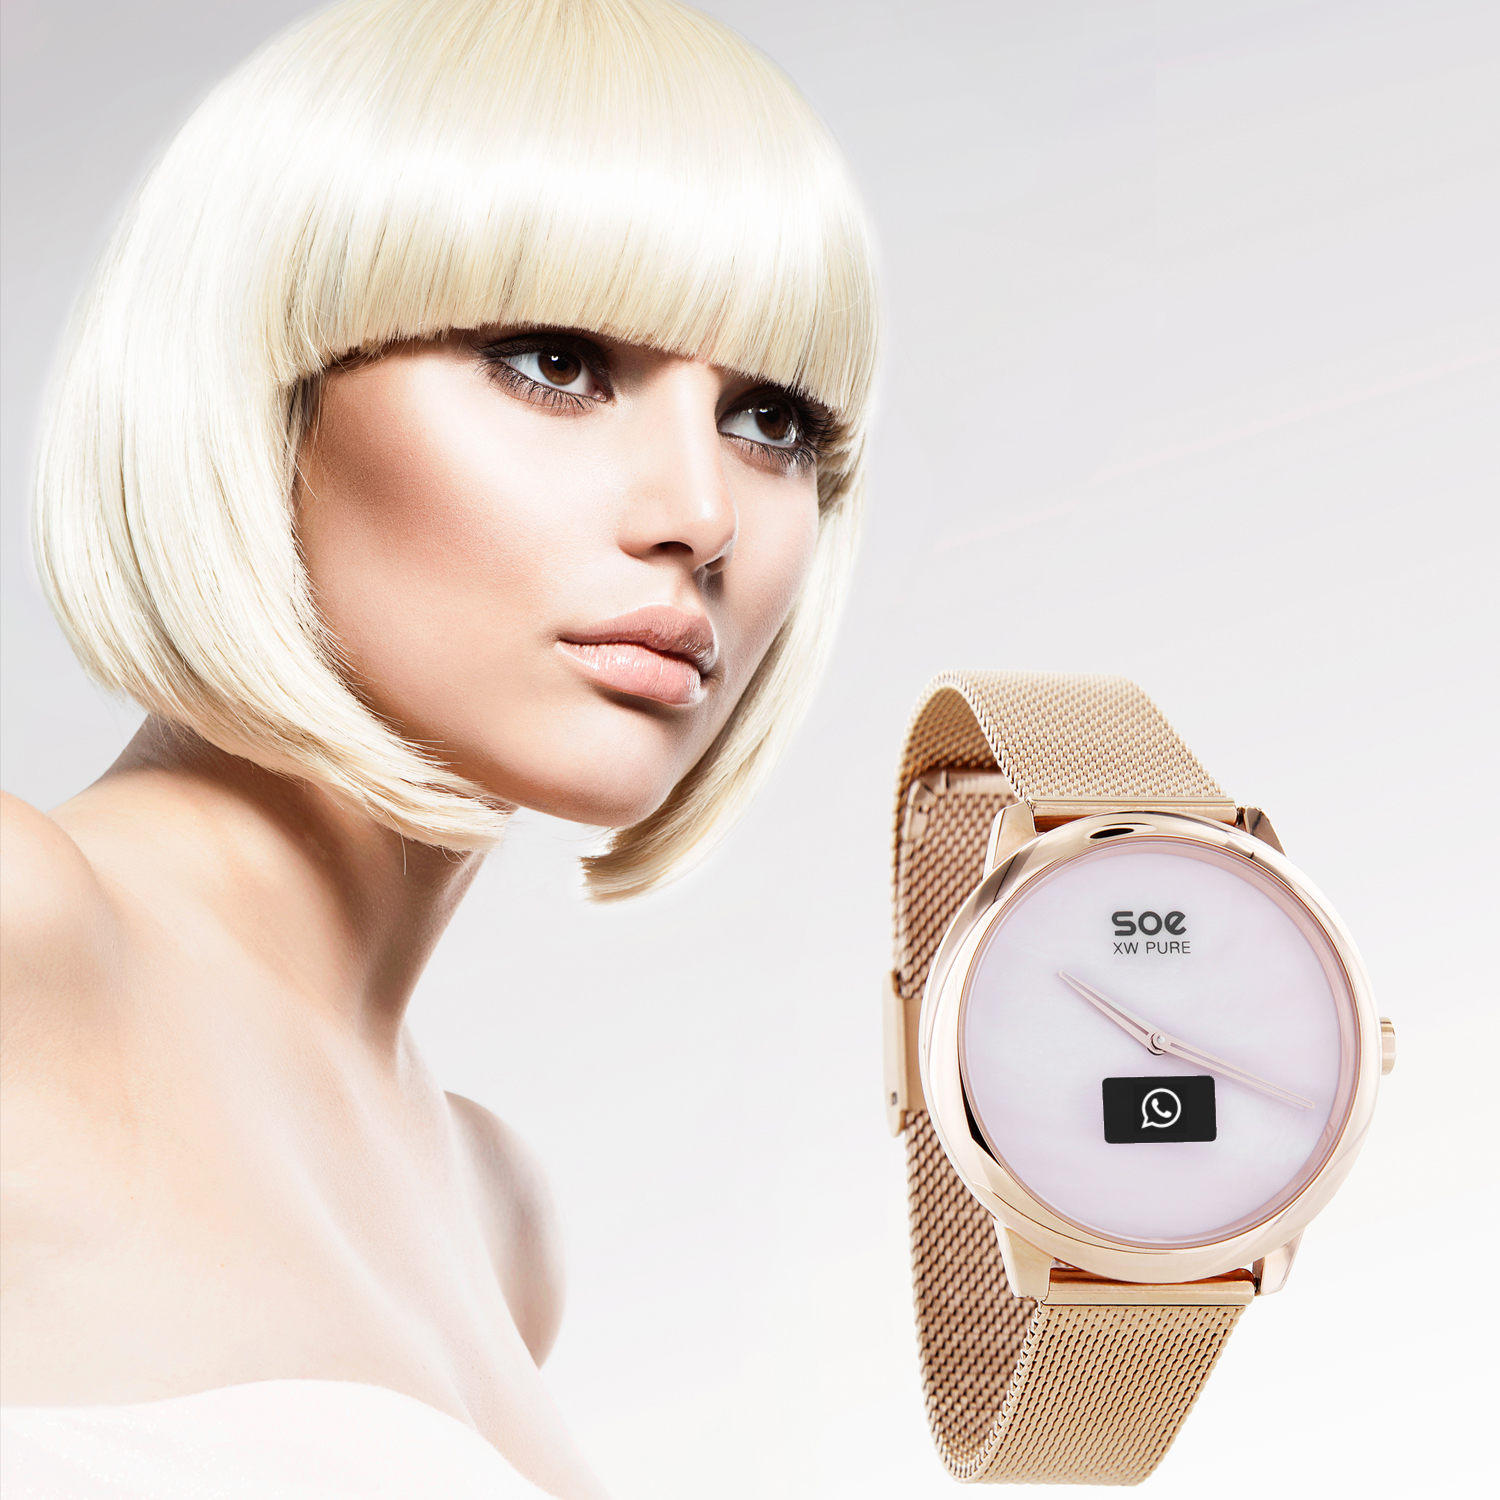 Smartwatch Damen X Watch Soe Smartwatch Damen Android Smartwatch